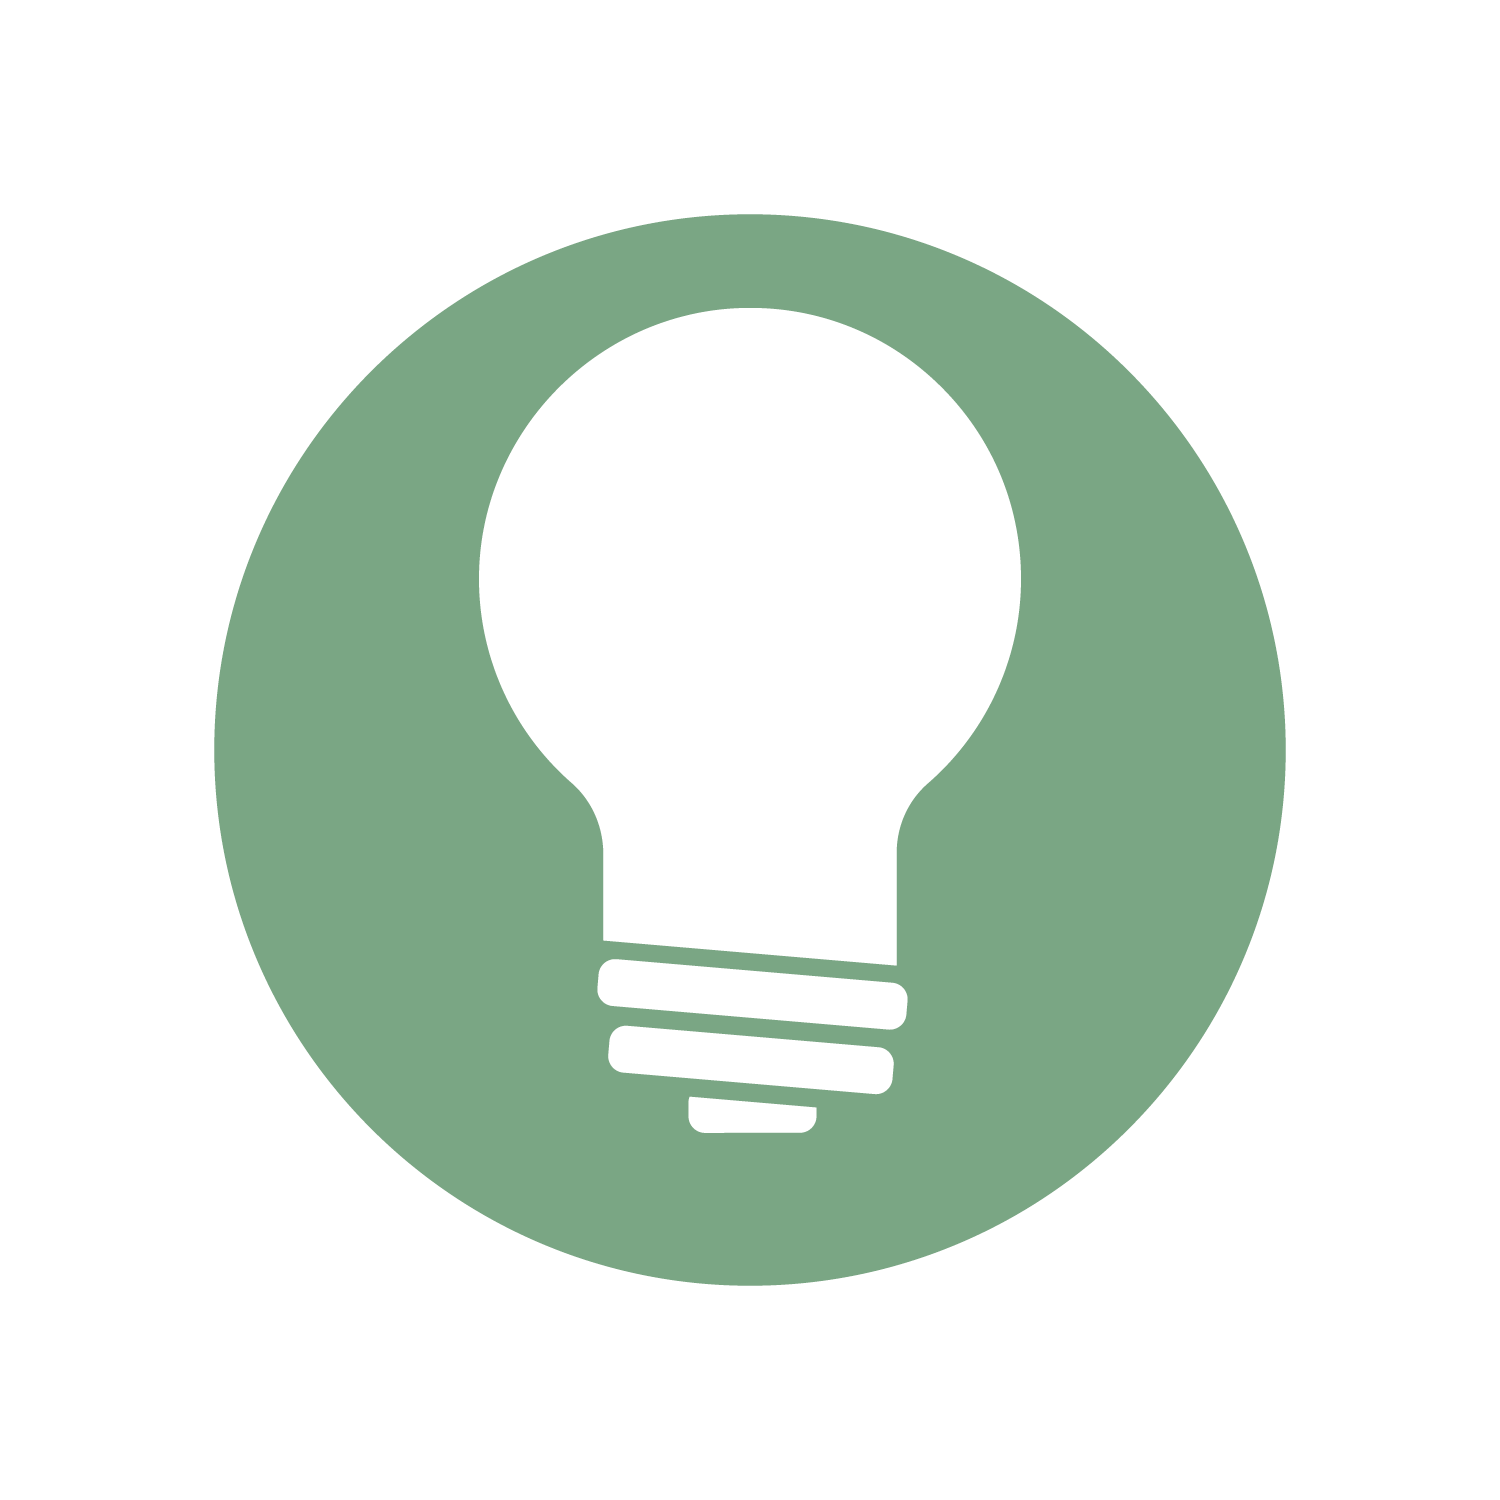 Lightbulb icon representing Consulting Services.